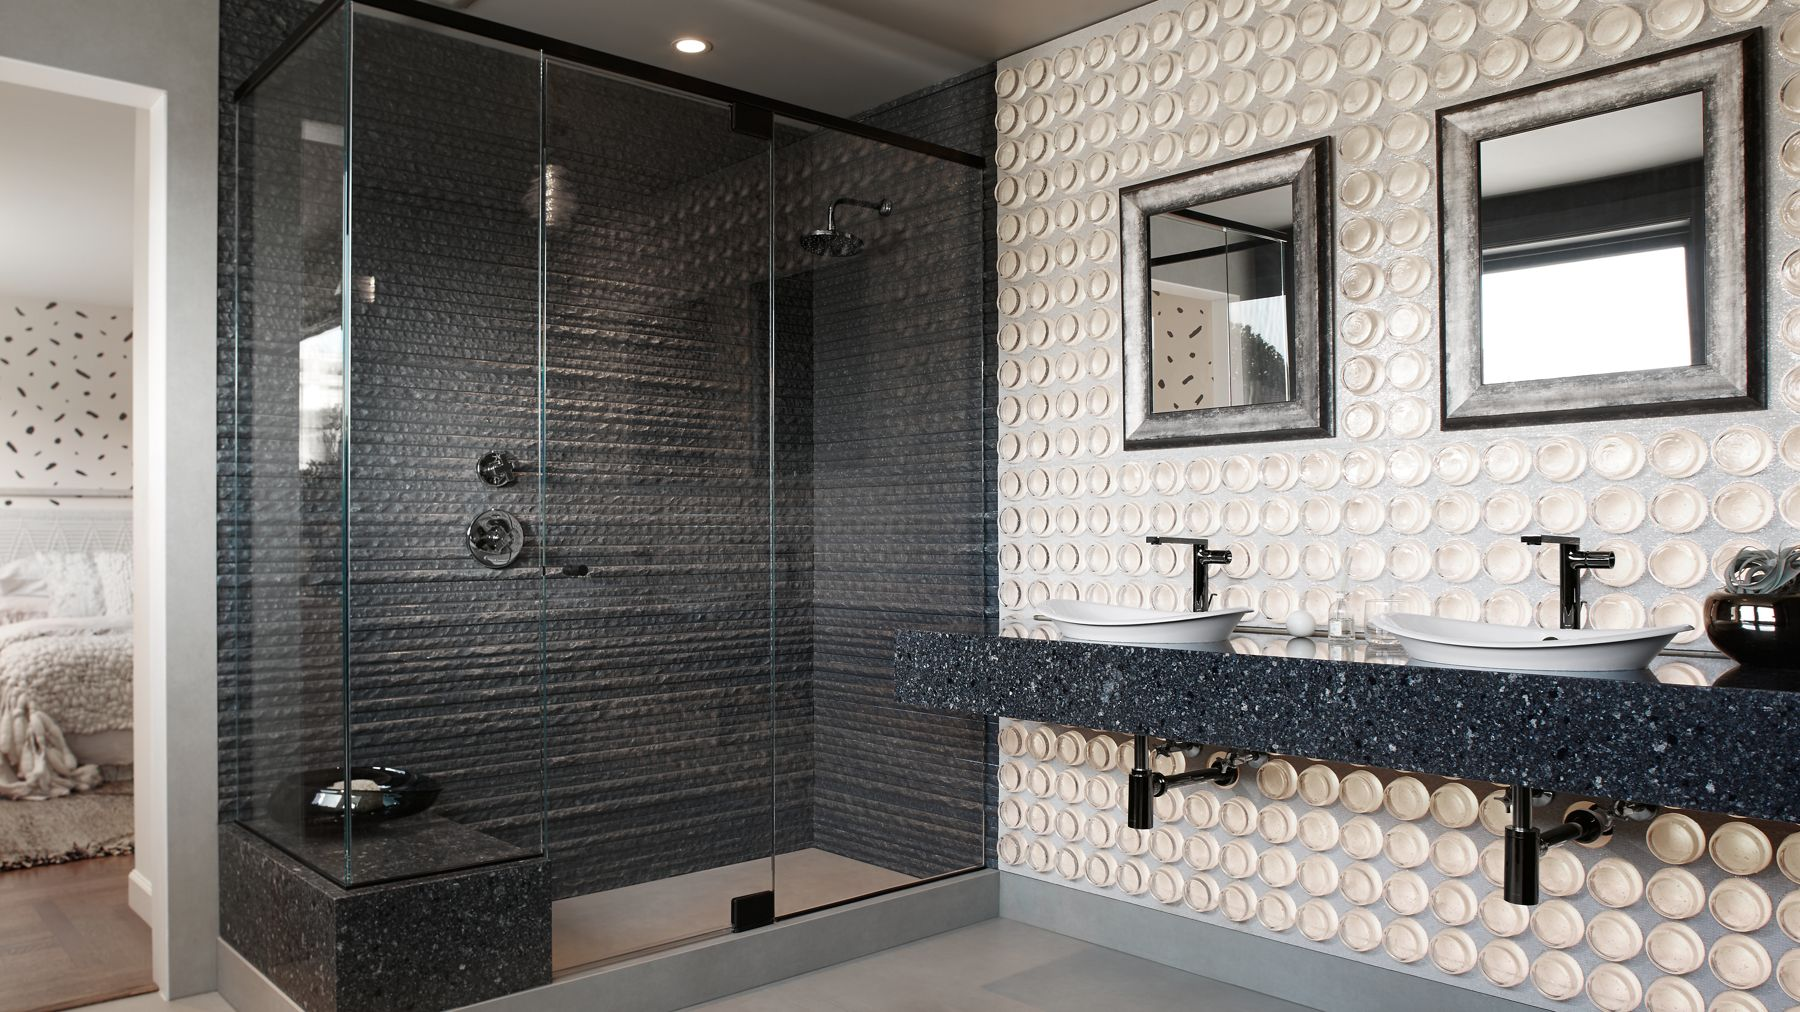 Toilets, Showers, Sinks, Faucets And More For